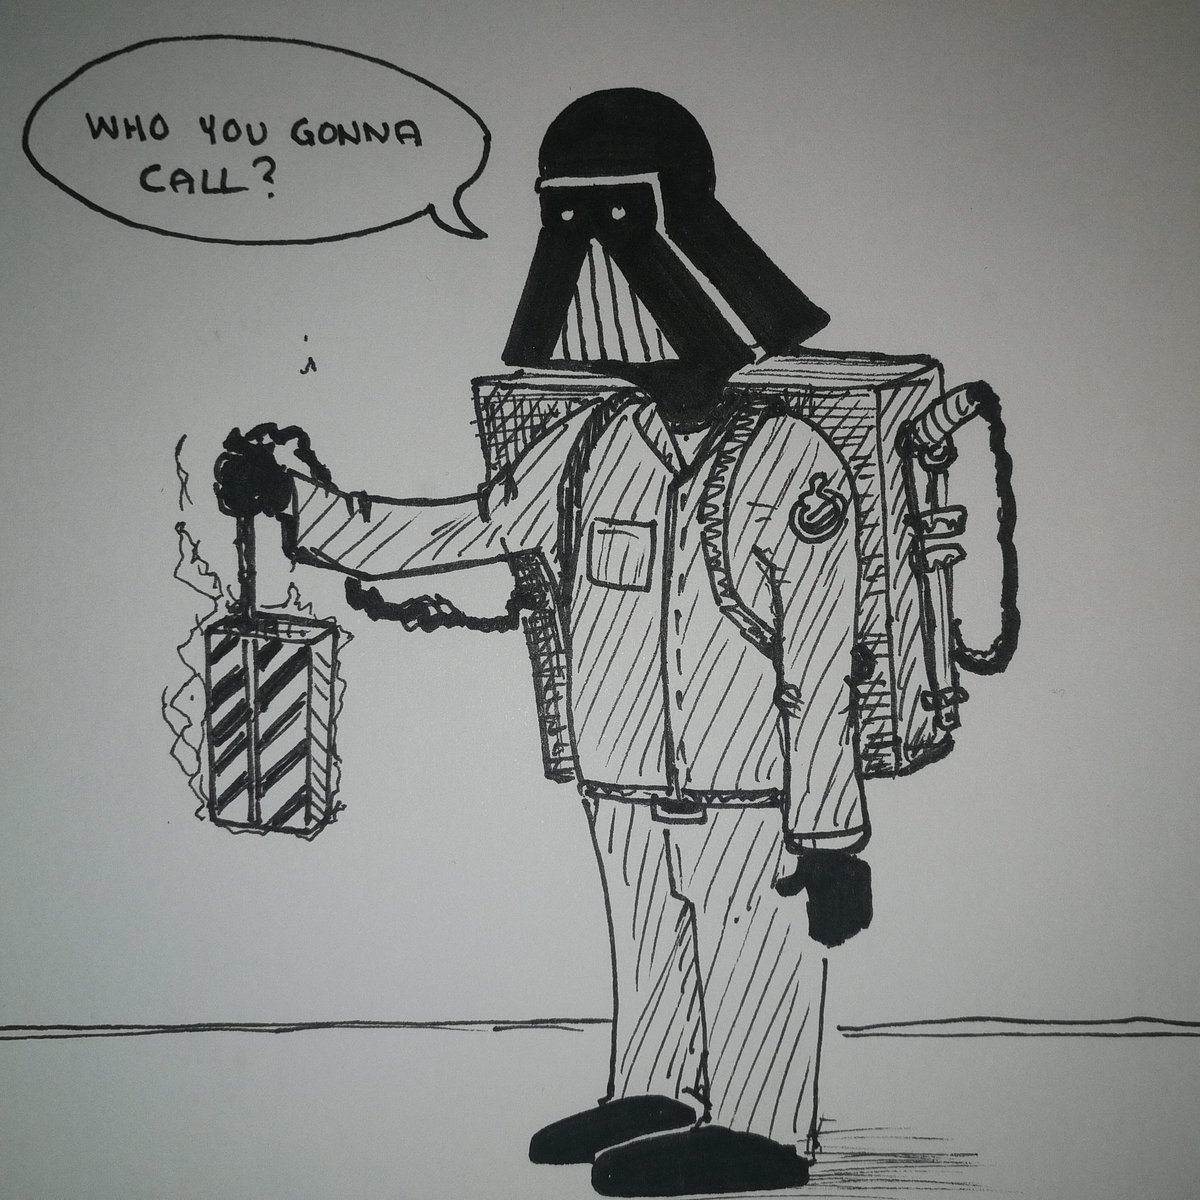 If you have problems with Jedi ghosts, #DarthVader #TheFarDarkSide #StarWars <br>http://pic.twitter.com/zon4runVCB